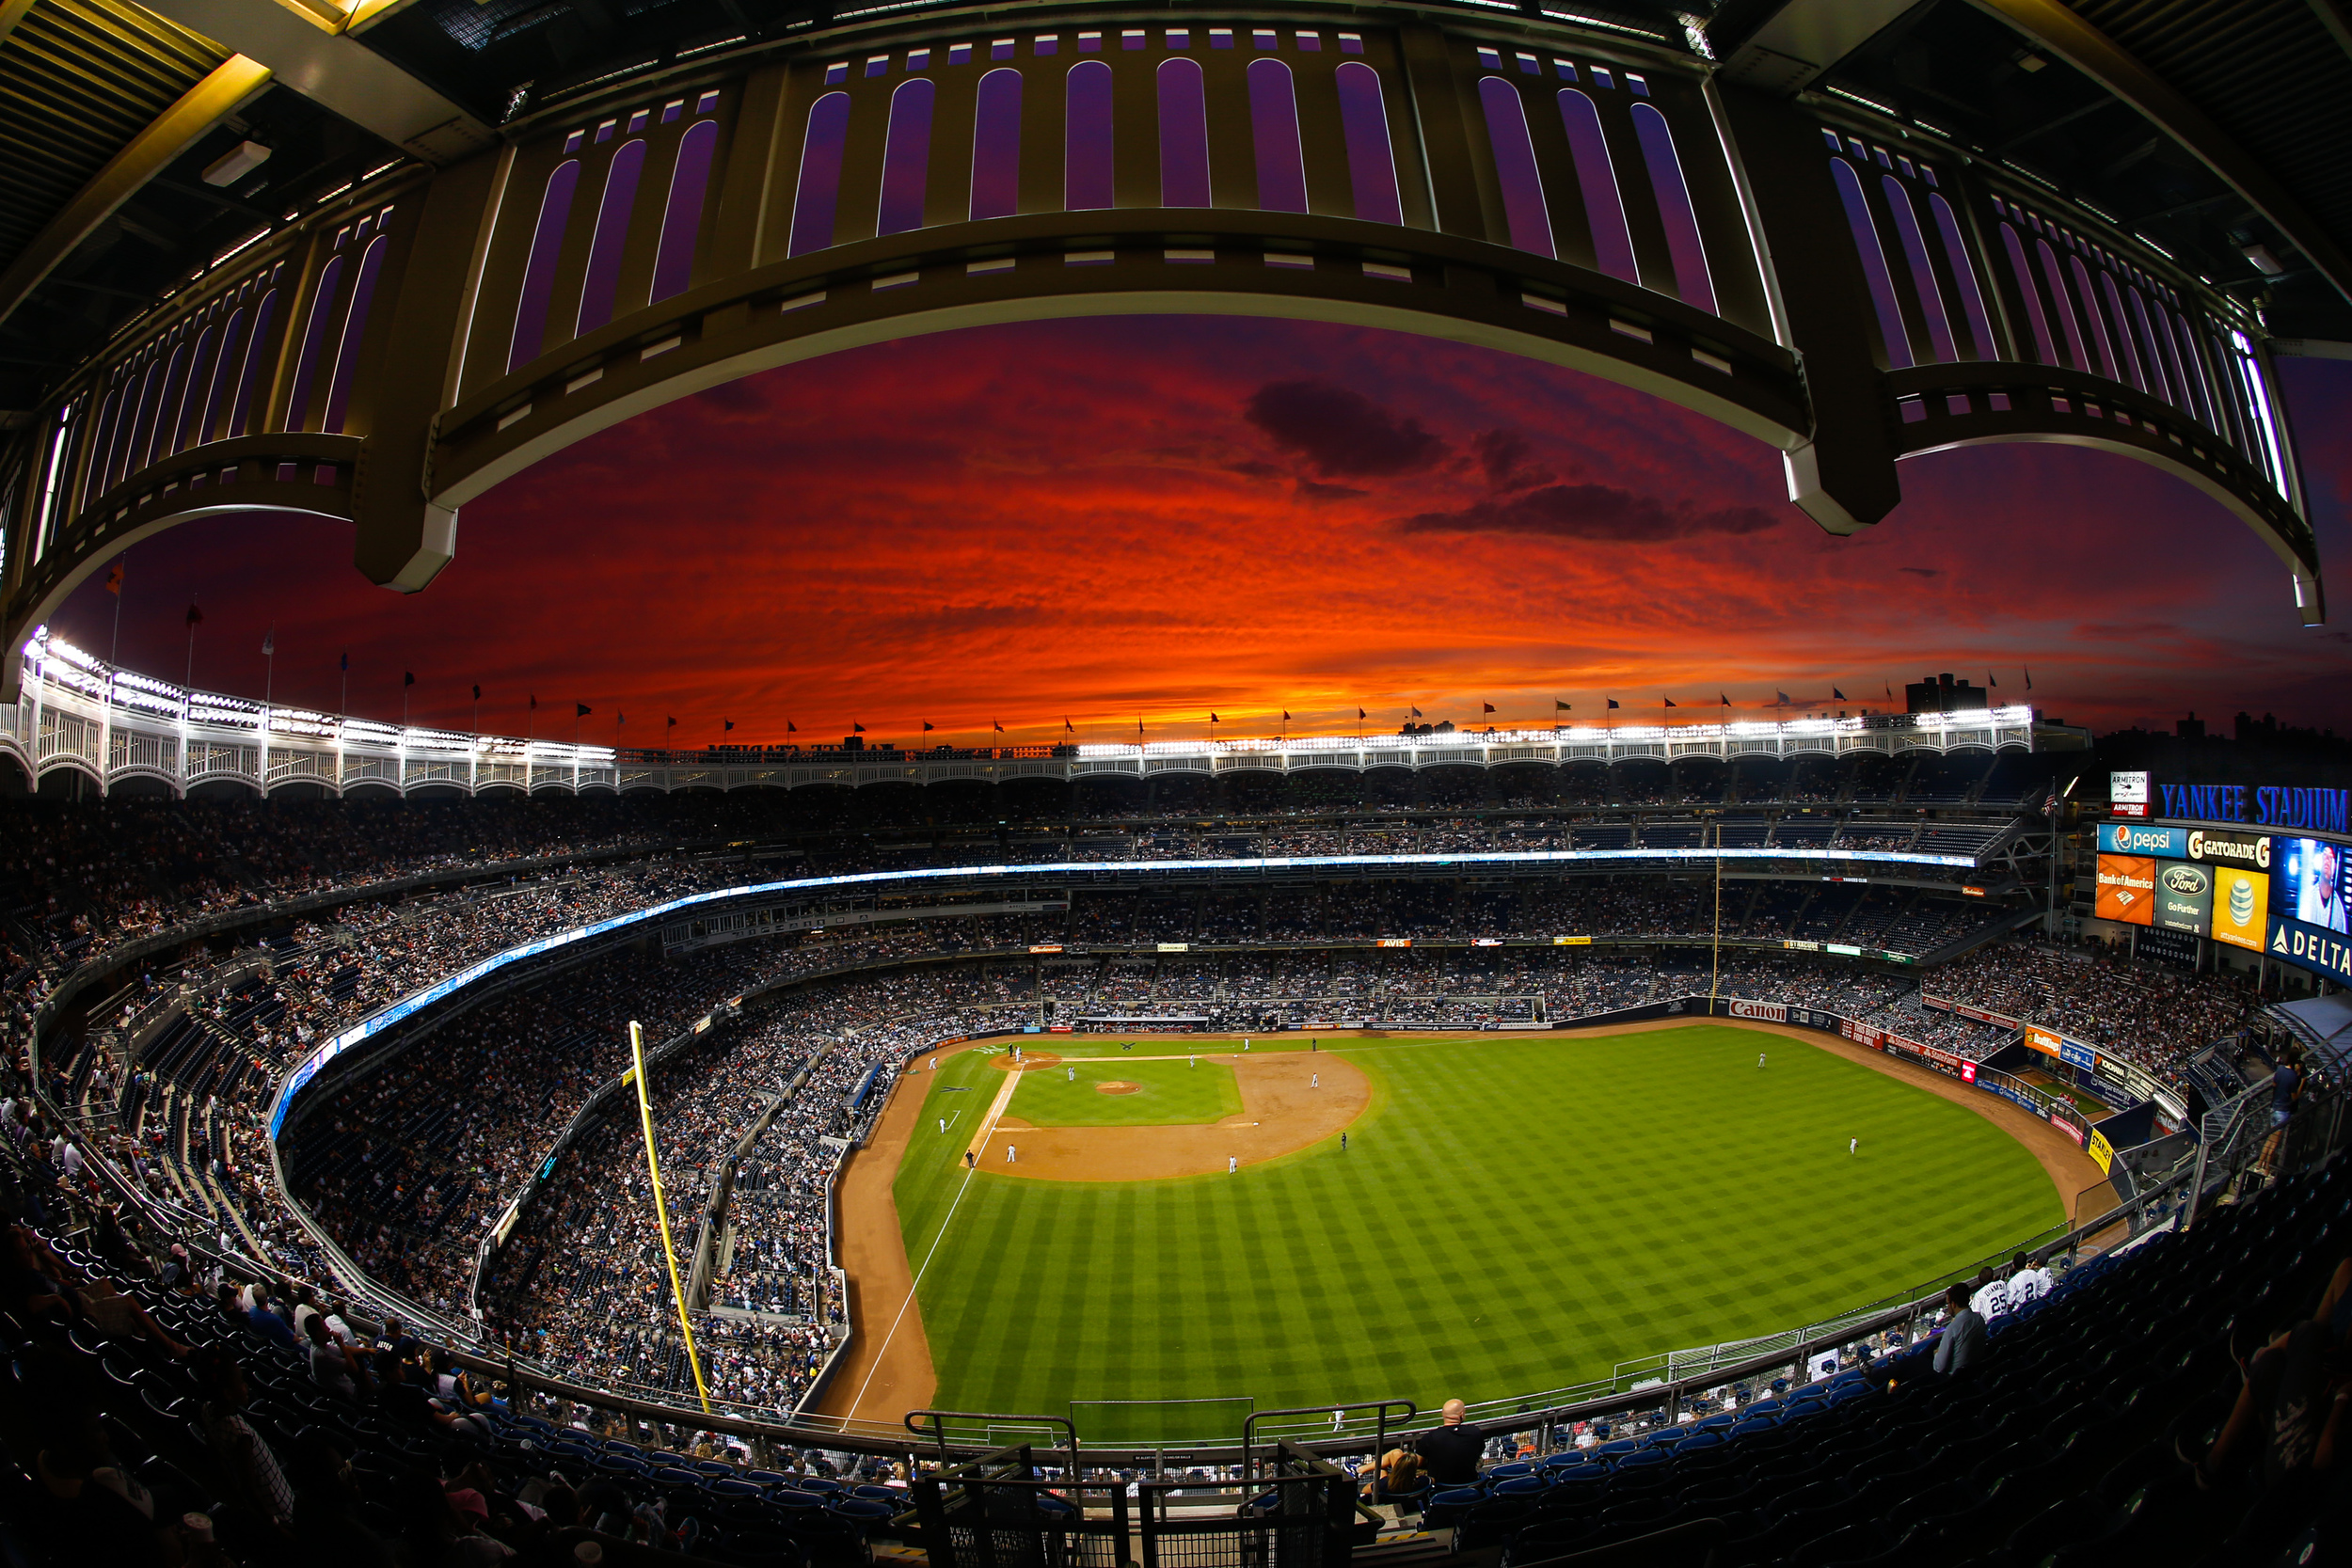 The view from the upper deck in right field of Yankee Stadium.